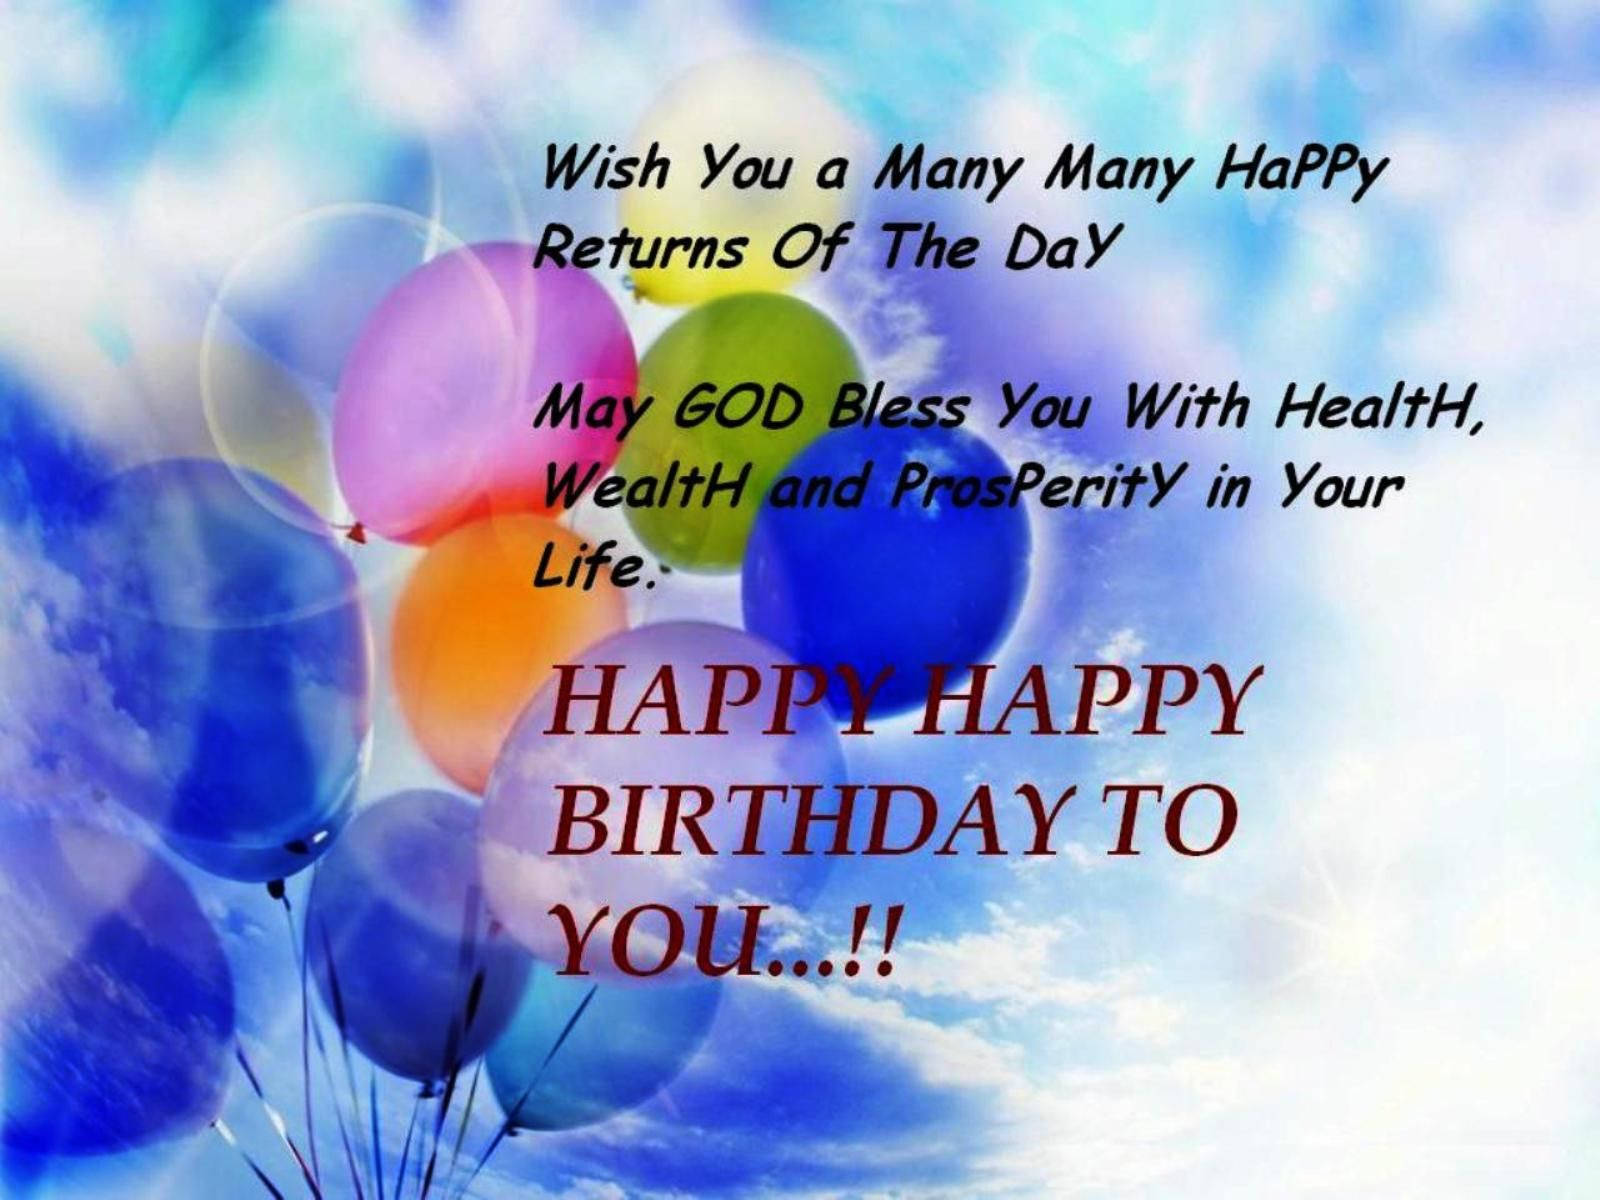 Pinterest Birthday Quotes: Birthday Is Special Day In Everyone's Life. Description